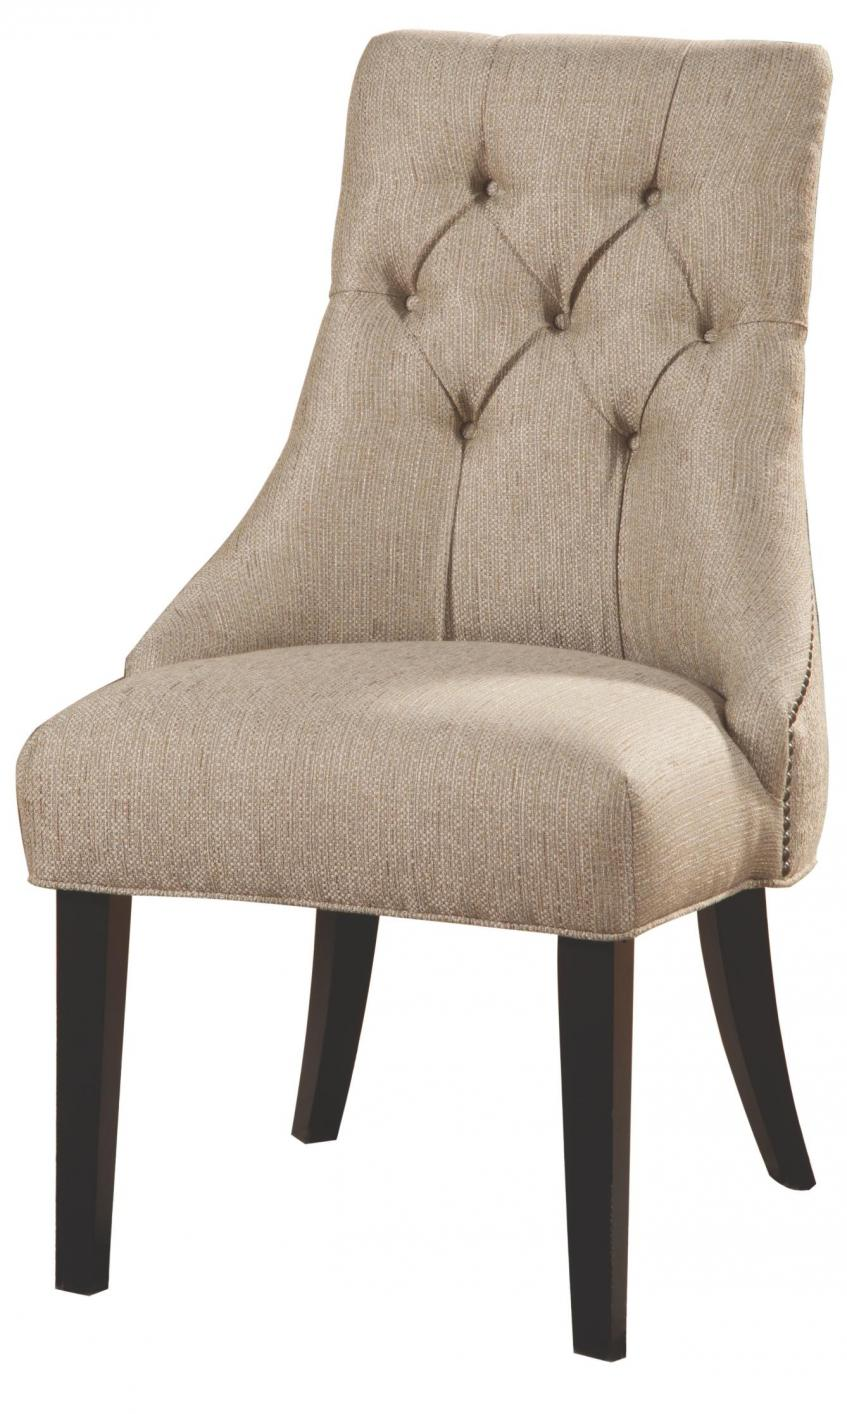 Custom Beige Accent Chair Decoration Ideas